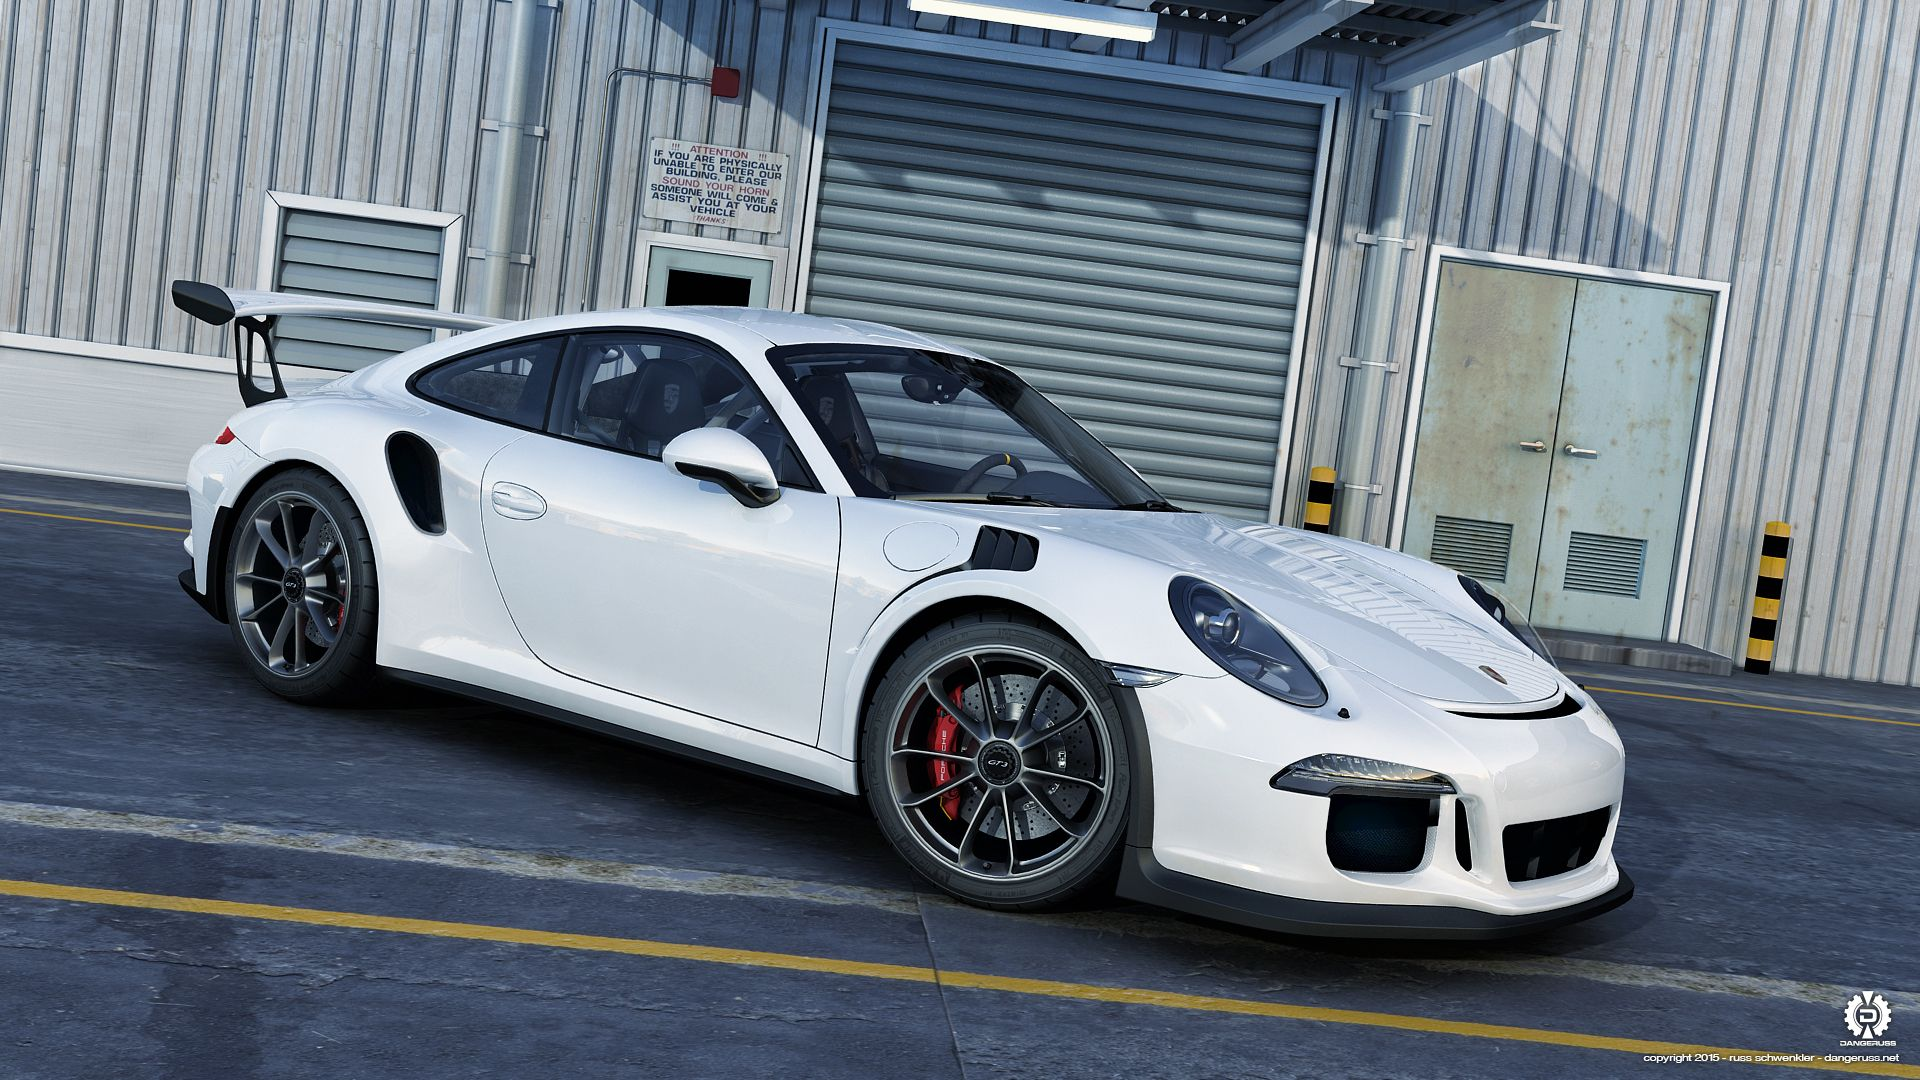 A Beautiful Porsche Gt3 Rs 1920x1080 Need Iphone 6s Plus Wallpaper Background For Iphone6splus Follow Iphone 6s Plus 3 Porsche 911 Gt3 Porsche Gt3 Rs